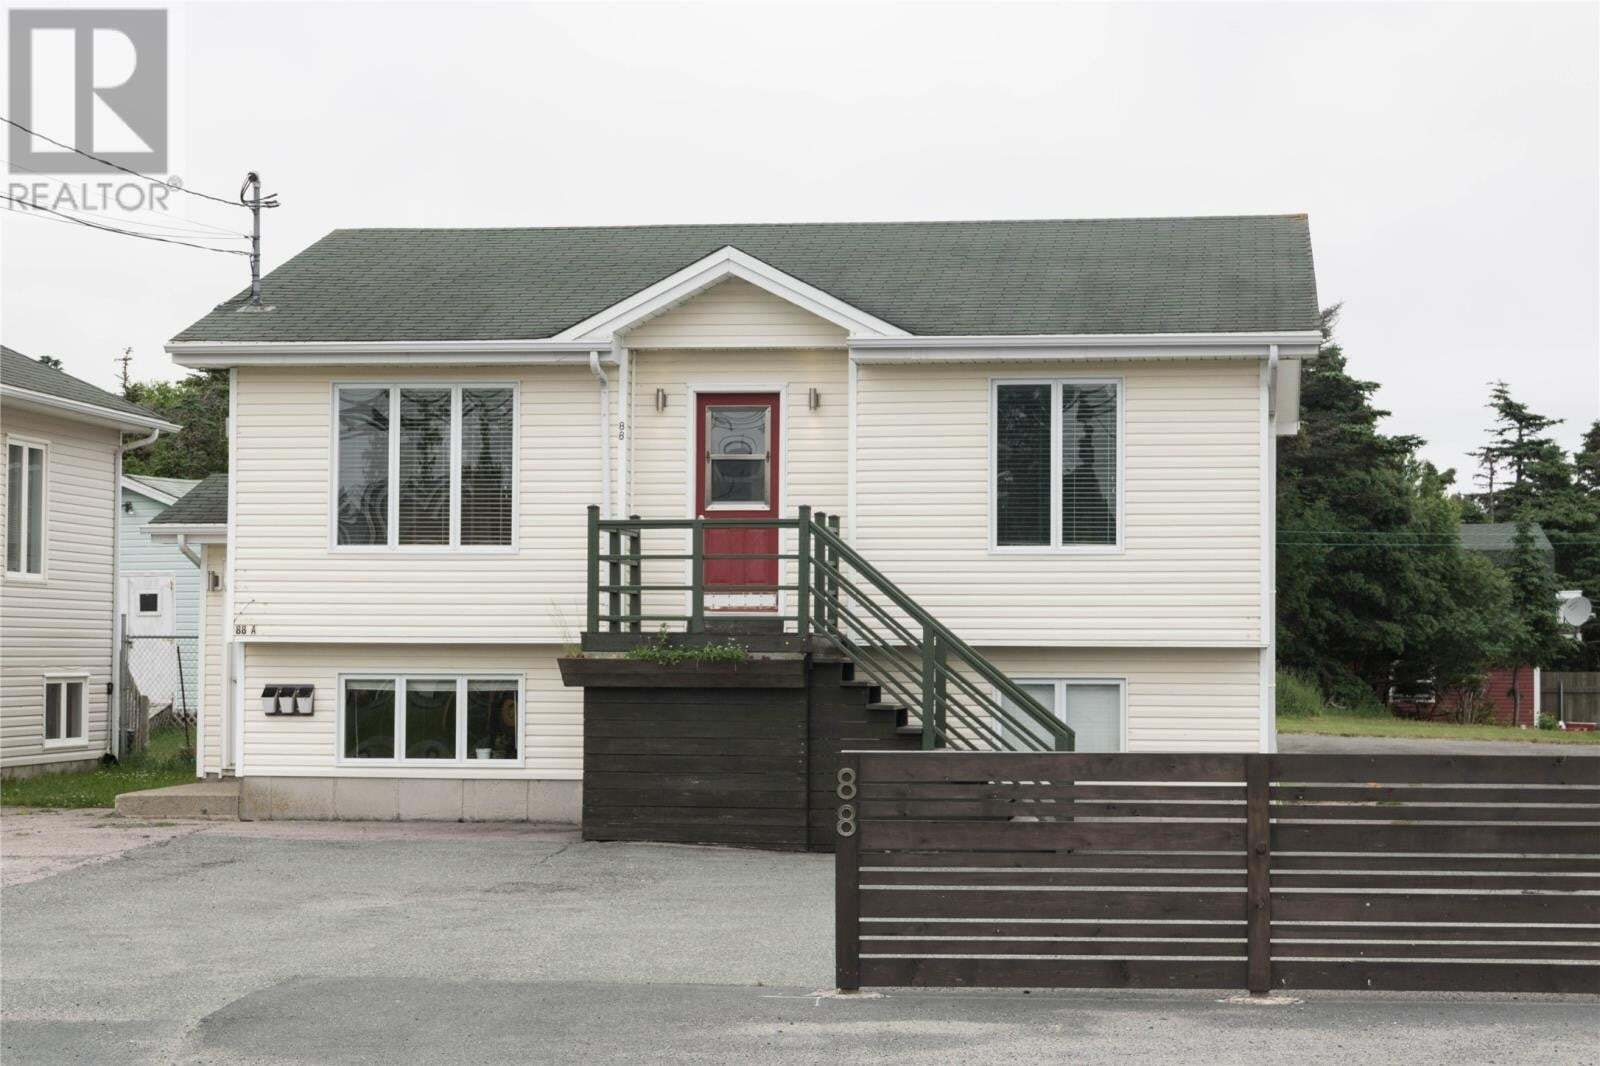 House for sale at 88 Bauline Line Torbay Newfoundland - MLS: 1217021